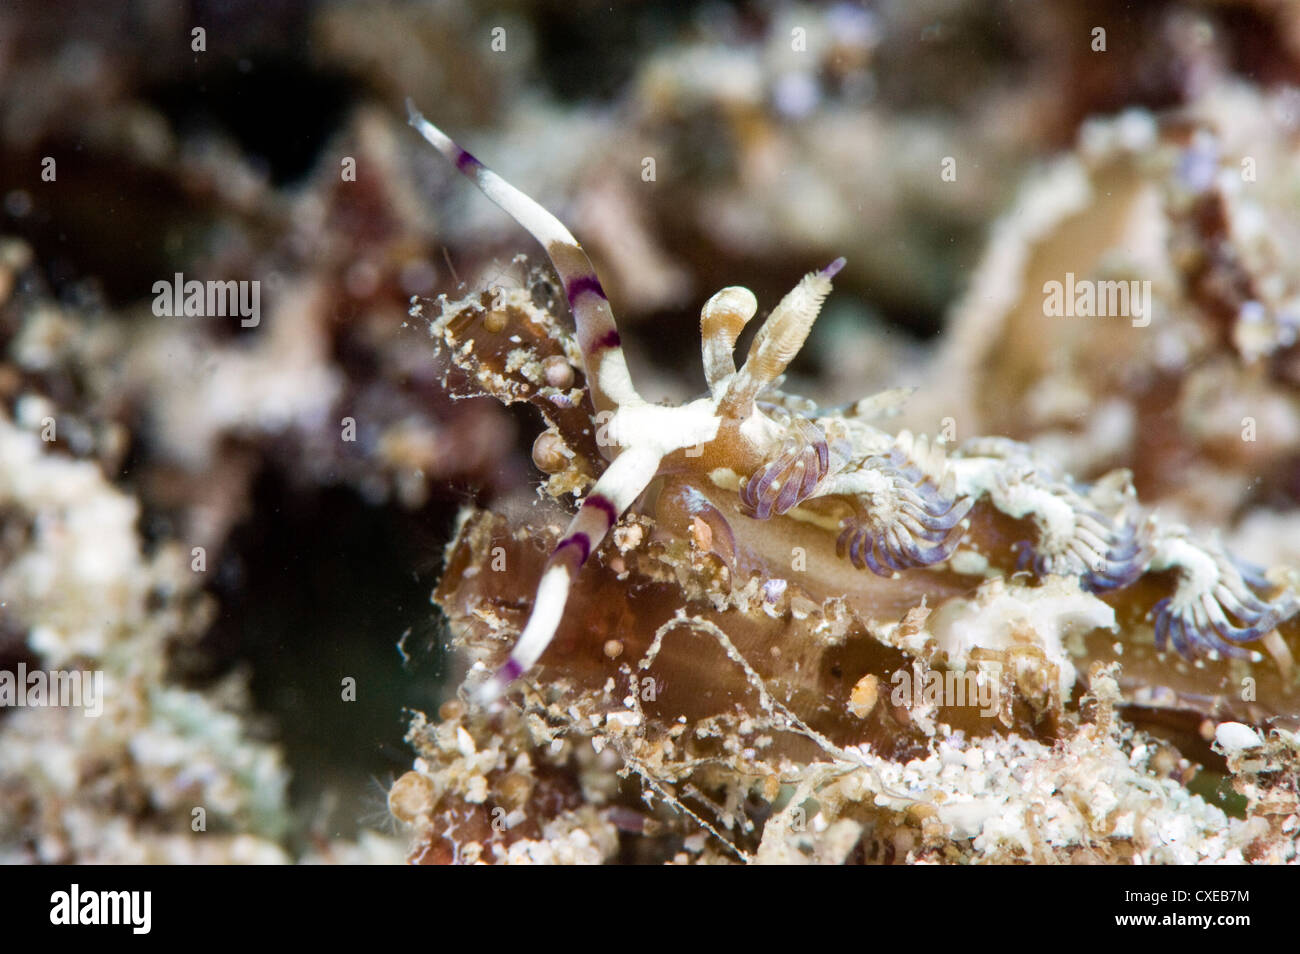 Pteraeolidia ianthina nudibranch, grows to 150mm, subtropical Indo-west Pacific waters, Philippines, Southeast Asia, - Stock Image